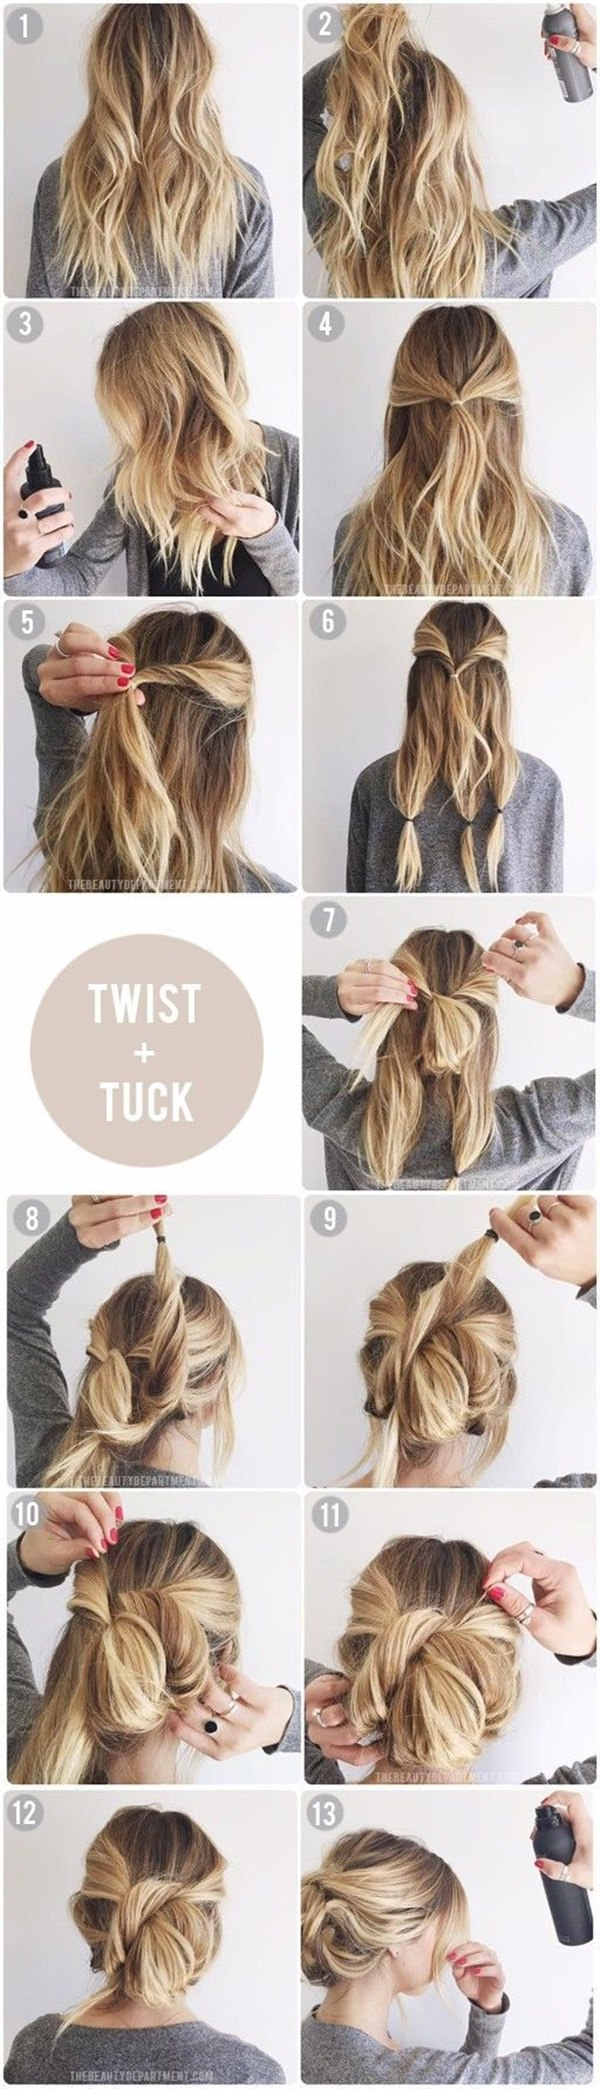 154 easy updos for long hair and how to do them - style easily